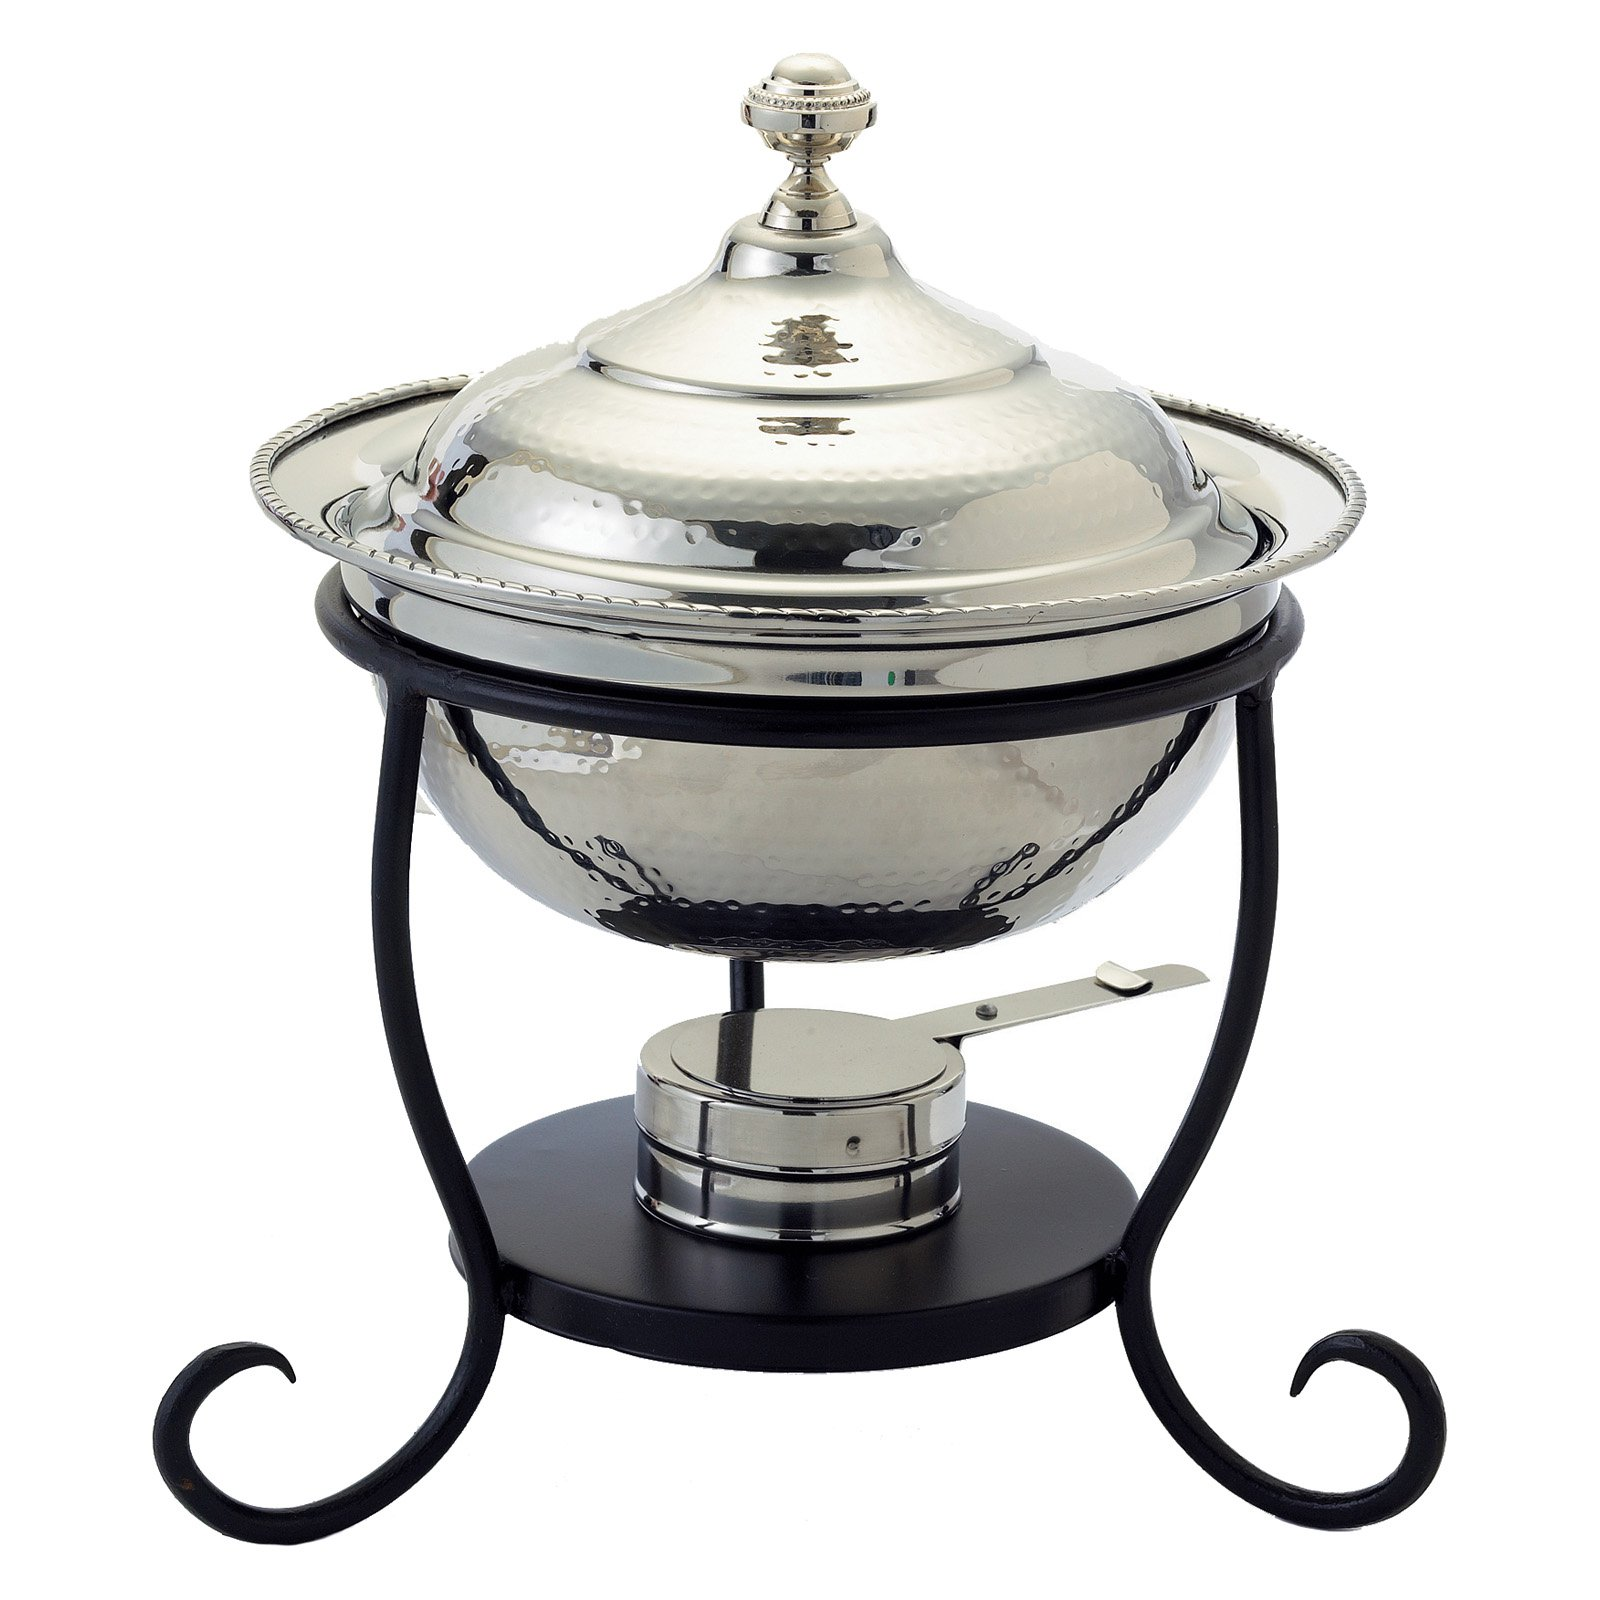 "12"" x 12½"" x 15"" Round Polished Nickel over S/S Chafing Dish, 3 Qt."